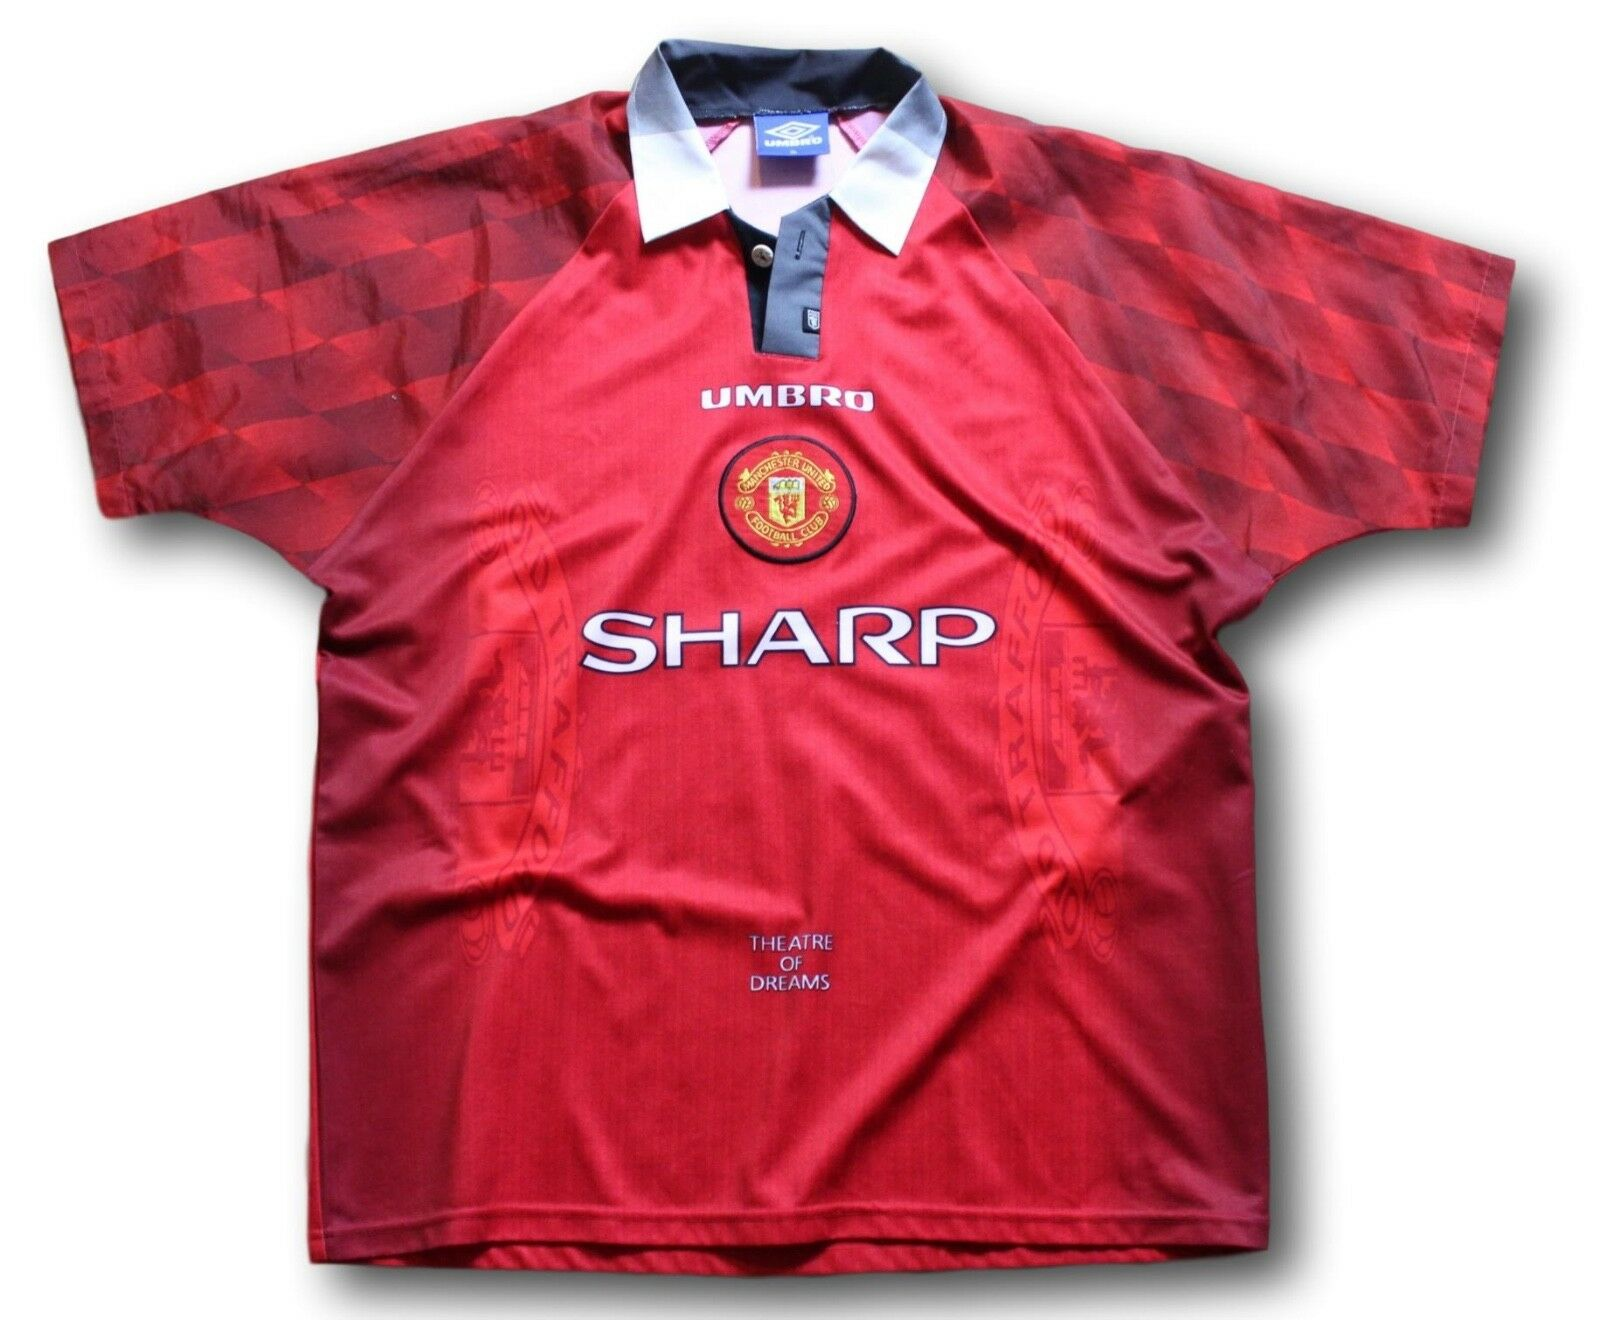 Vintage 1996-98 Manchester United Home Soccer Football Shirt Jersey Size XL